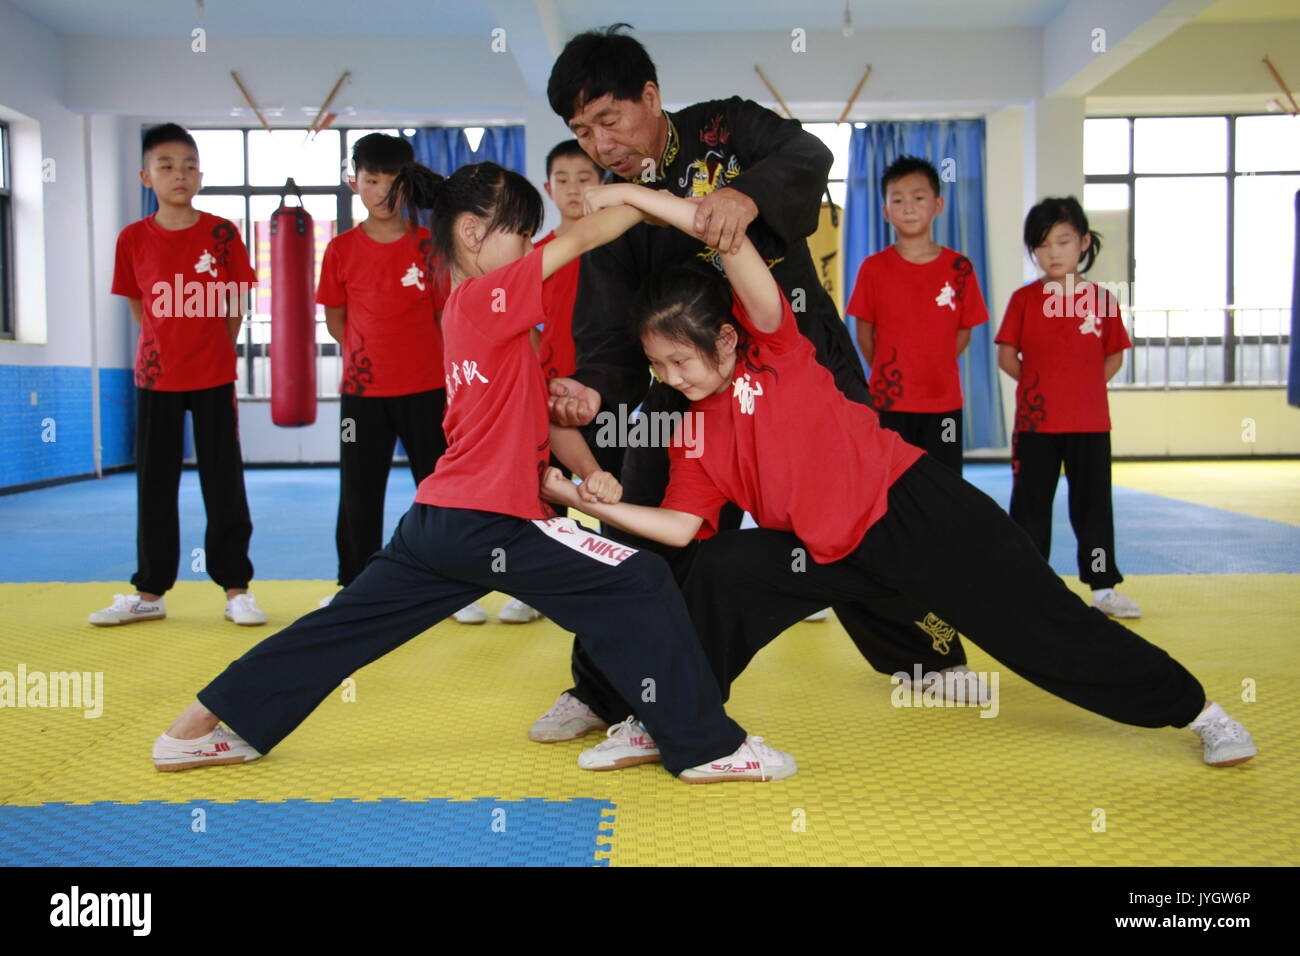 Handan. 19th Aug, 2017. Pupils learn Wushu from intangible cultural heritage inheritor Wang Shaoting in Cheng'an County in north China's Hebei Province, Aug. 19, 2017. Various extracurricular activities attracted many young students in China in the summer vacation time. Credit: Wang Junyong/Xinhua/Alamy Live News - Stock Image